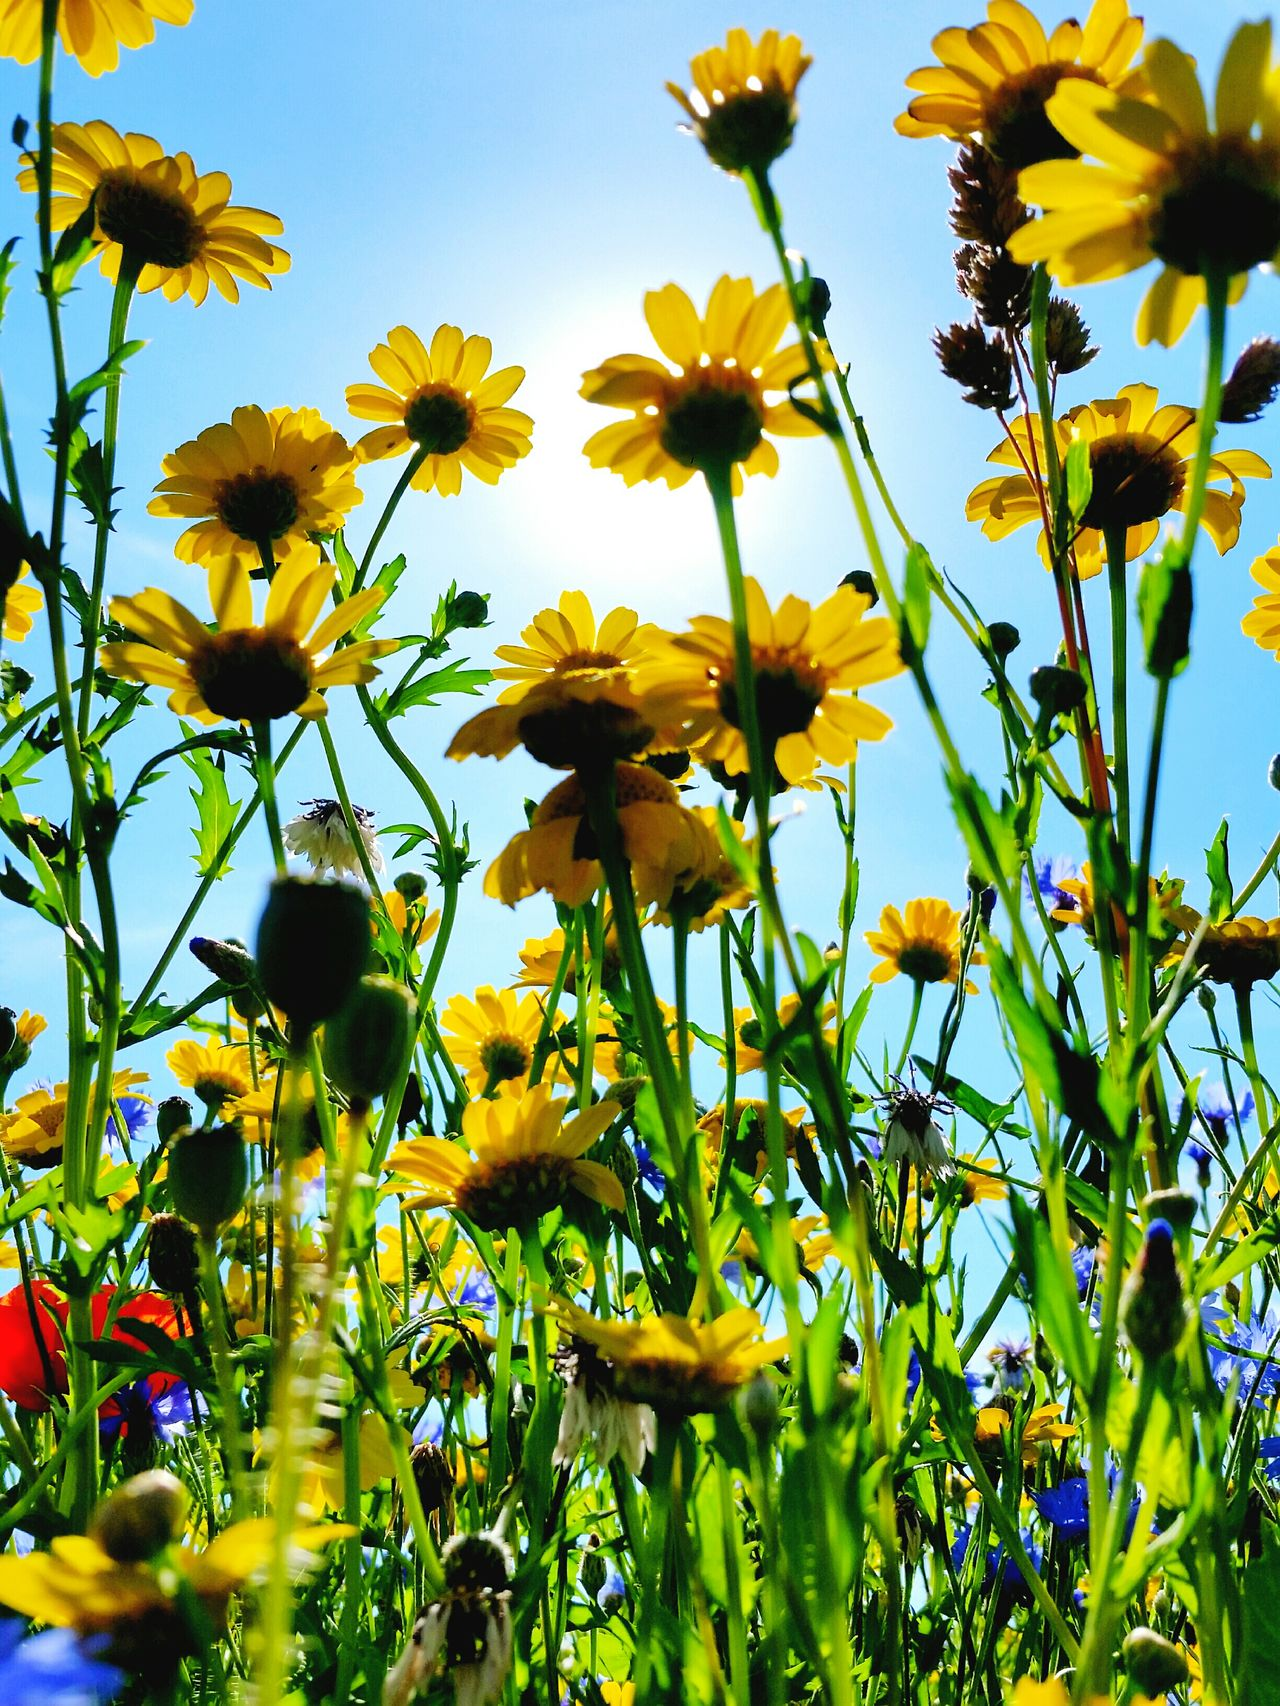 Beauty In Nature Yellow Fragility Flower Head Low Angle View Looking Up! Wildflowers Flower Nature Outdoors Summer Colours On The Verge